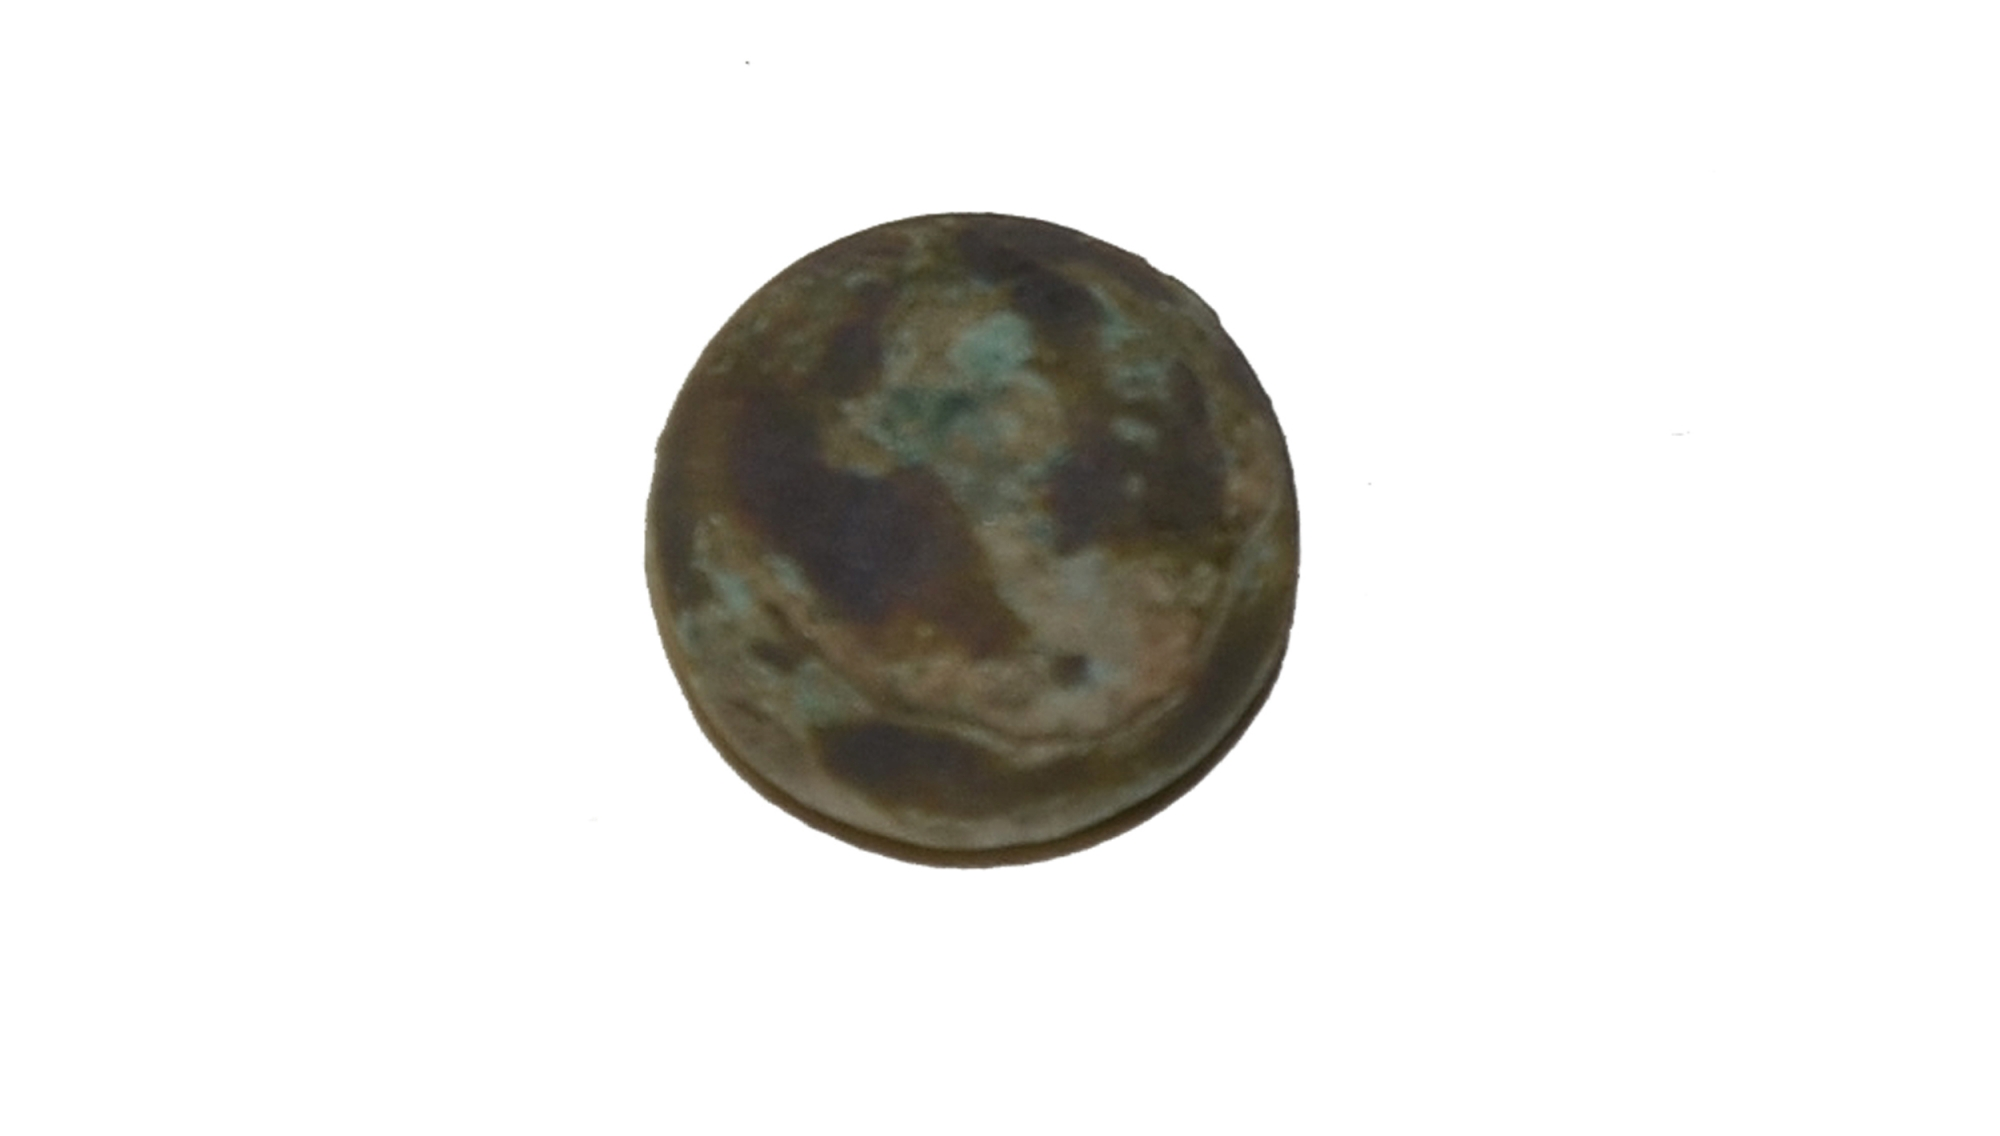 ZOUAVE CUFF BUTTON, 114th PENNSYLVANIA INFANTRY, RECOVERED FROM SHERFY FARM, GETTYSBURG